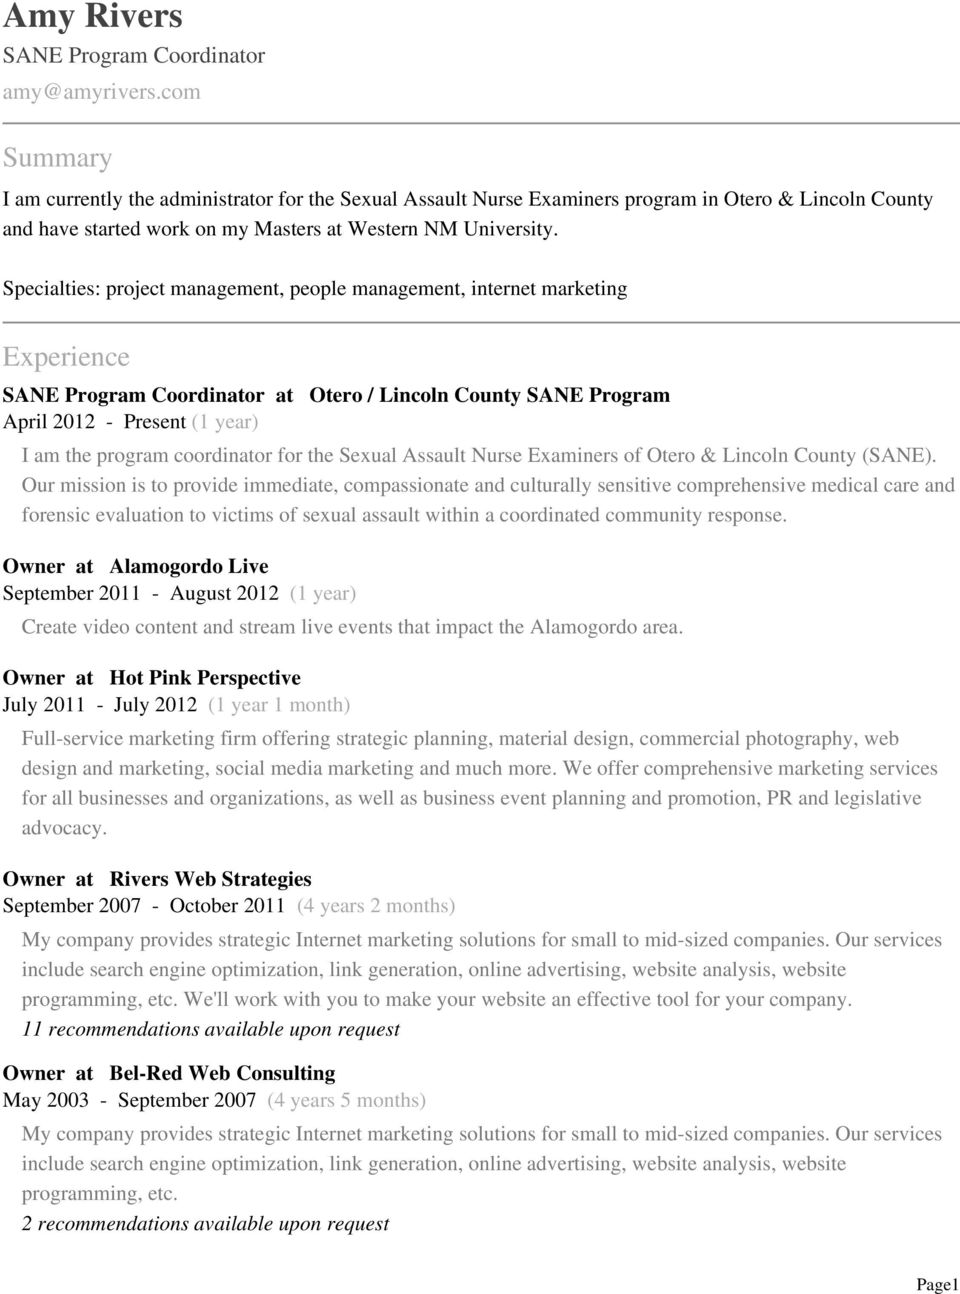 Specialties: project management, people management, internet marketing Experience SANE Program Coordinator at Otero / Lincoln County SANE Program April 2012 - Present (1 year) I am the program